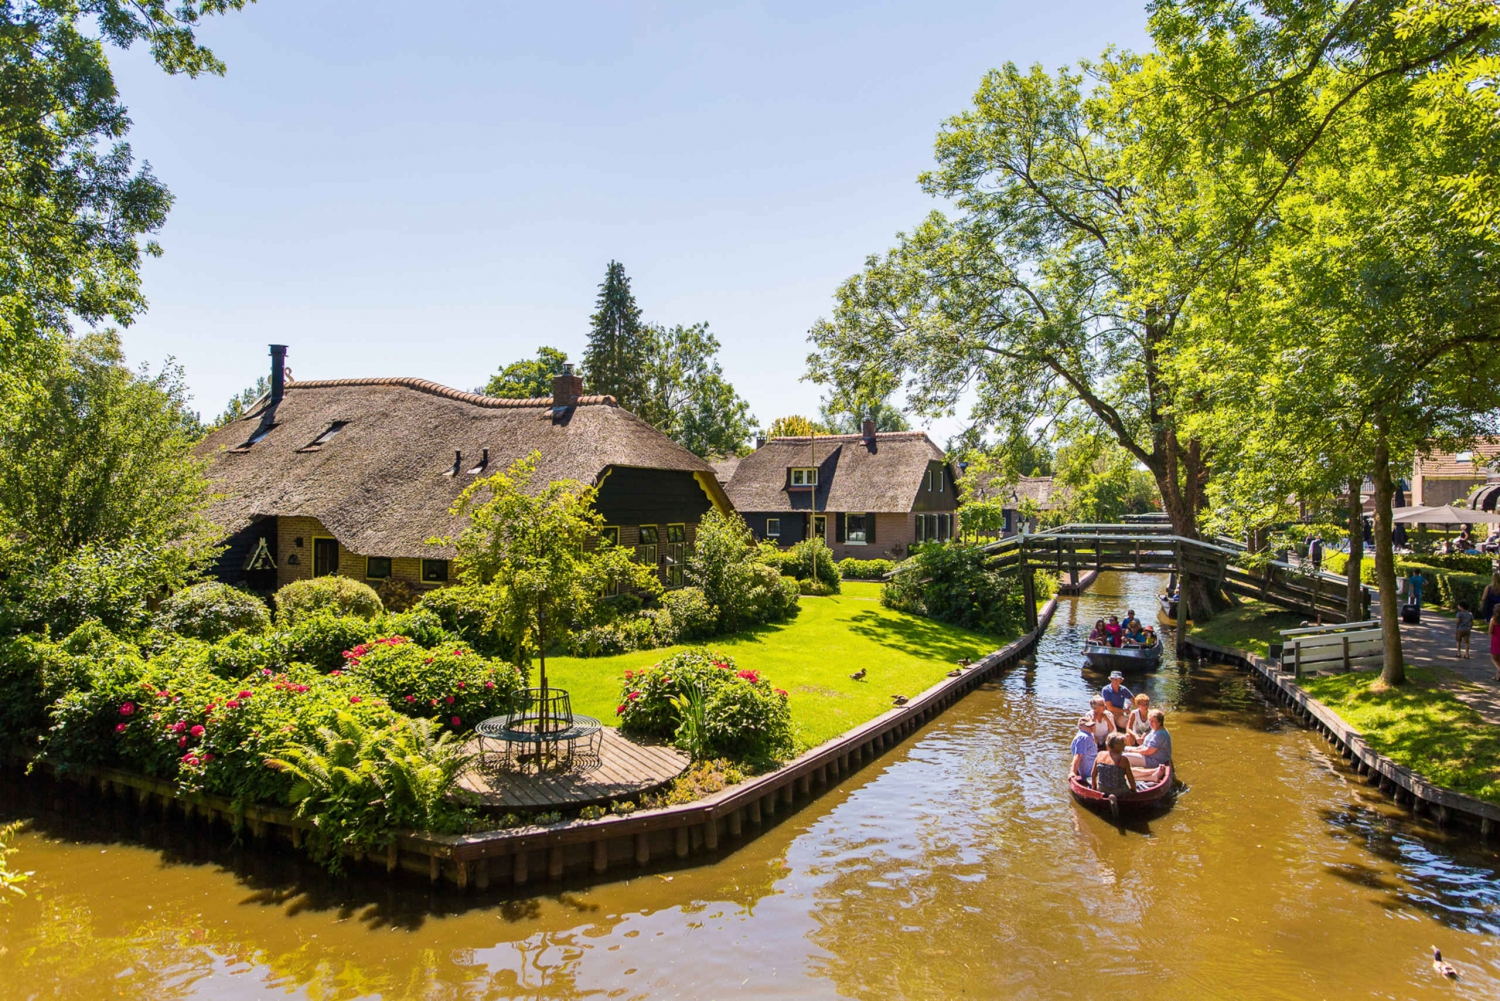 Giethoorn Tour and Free 1-Hour Amsterdam Canal Cruise